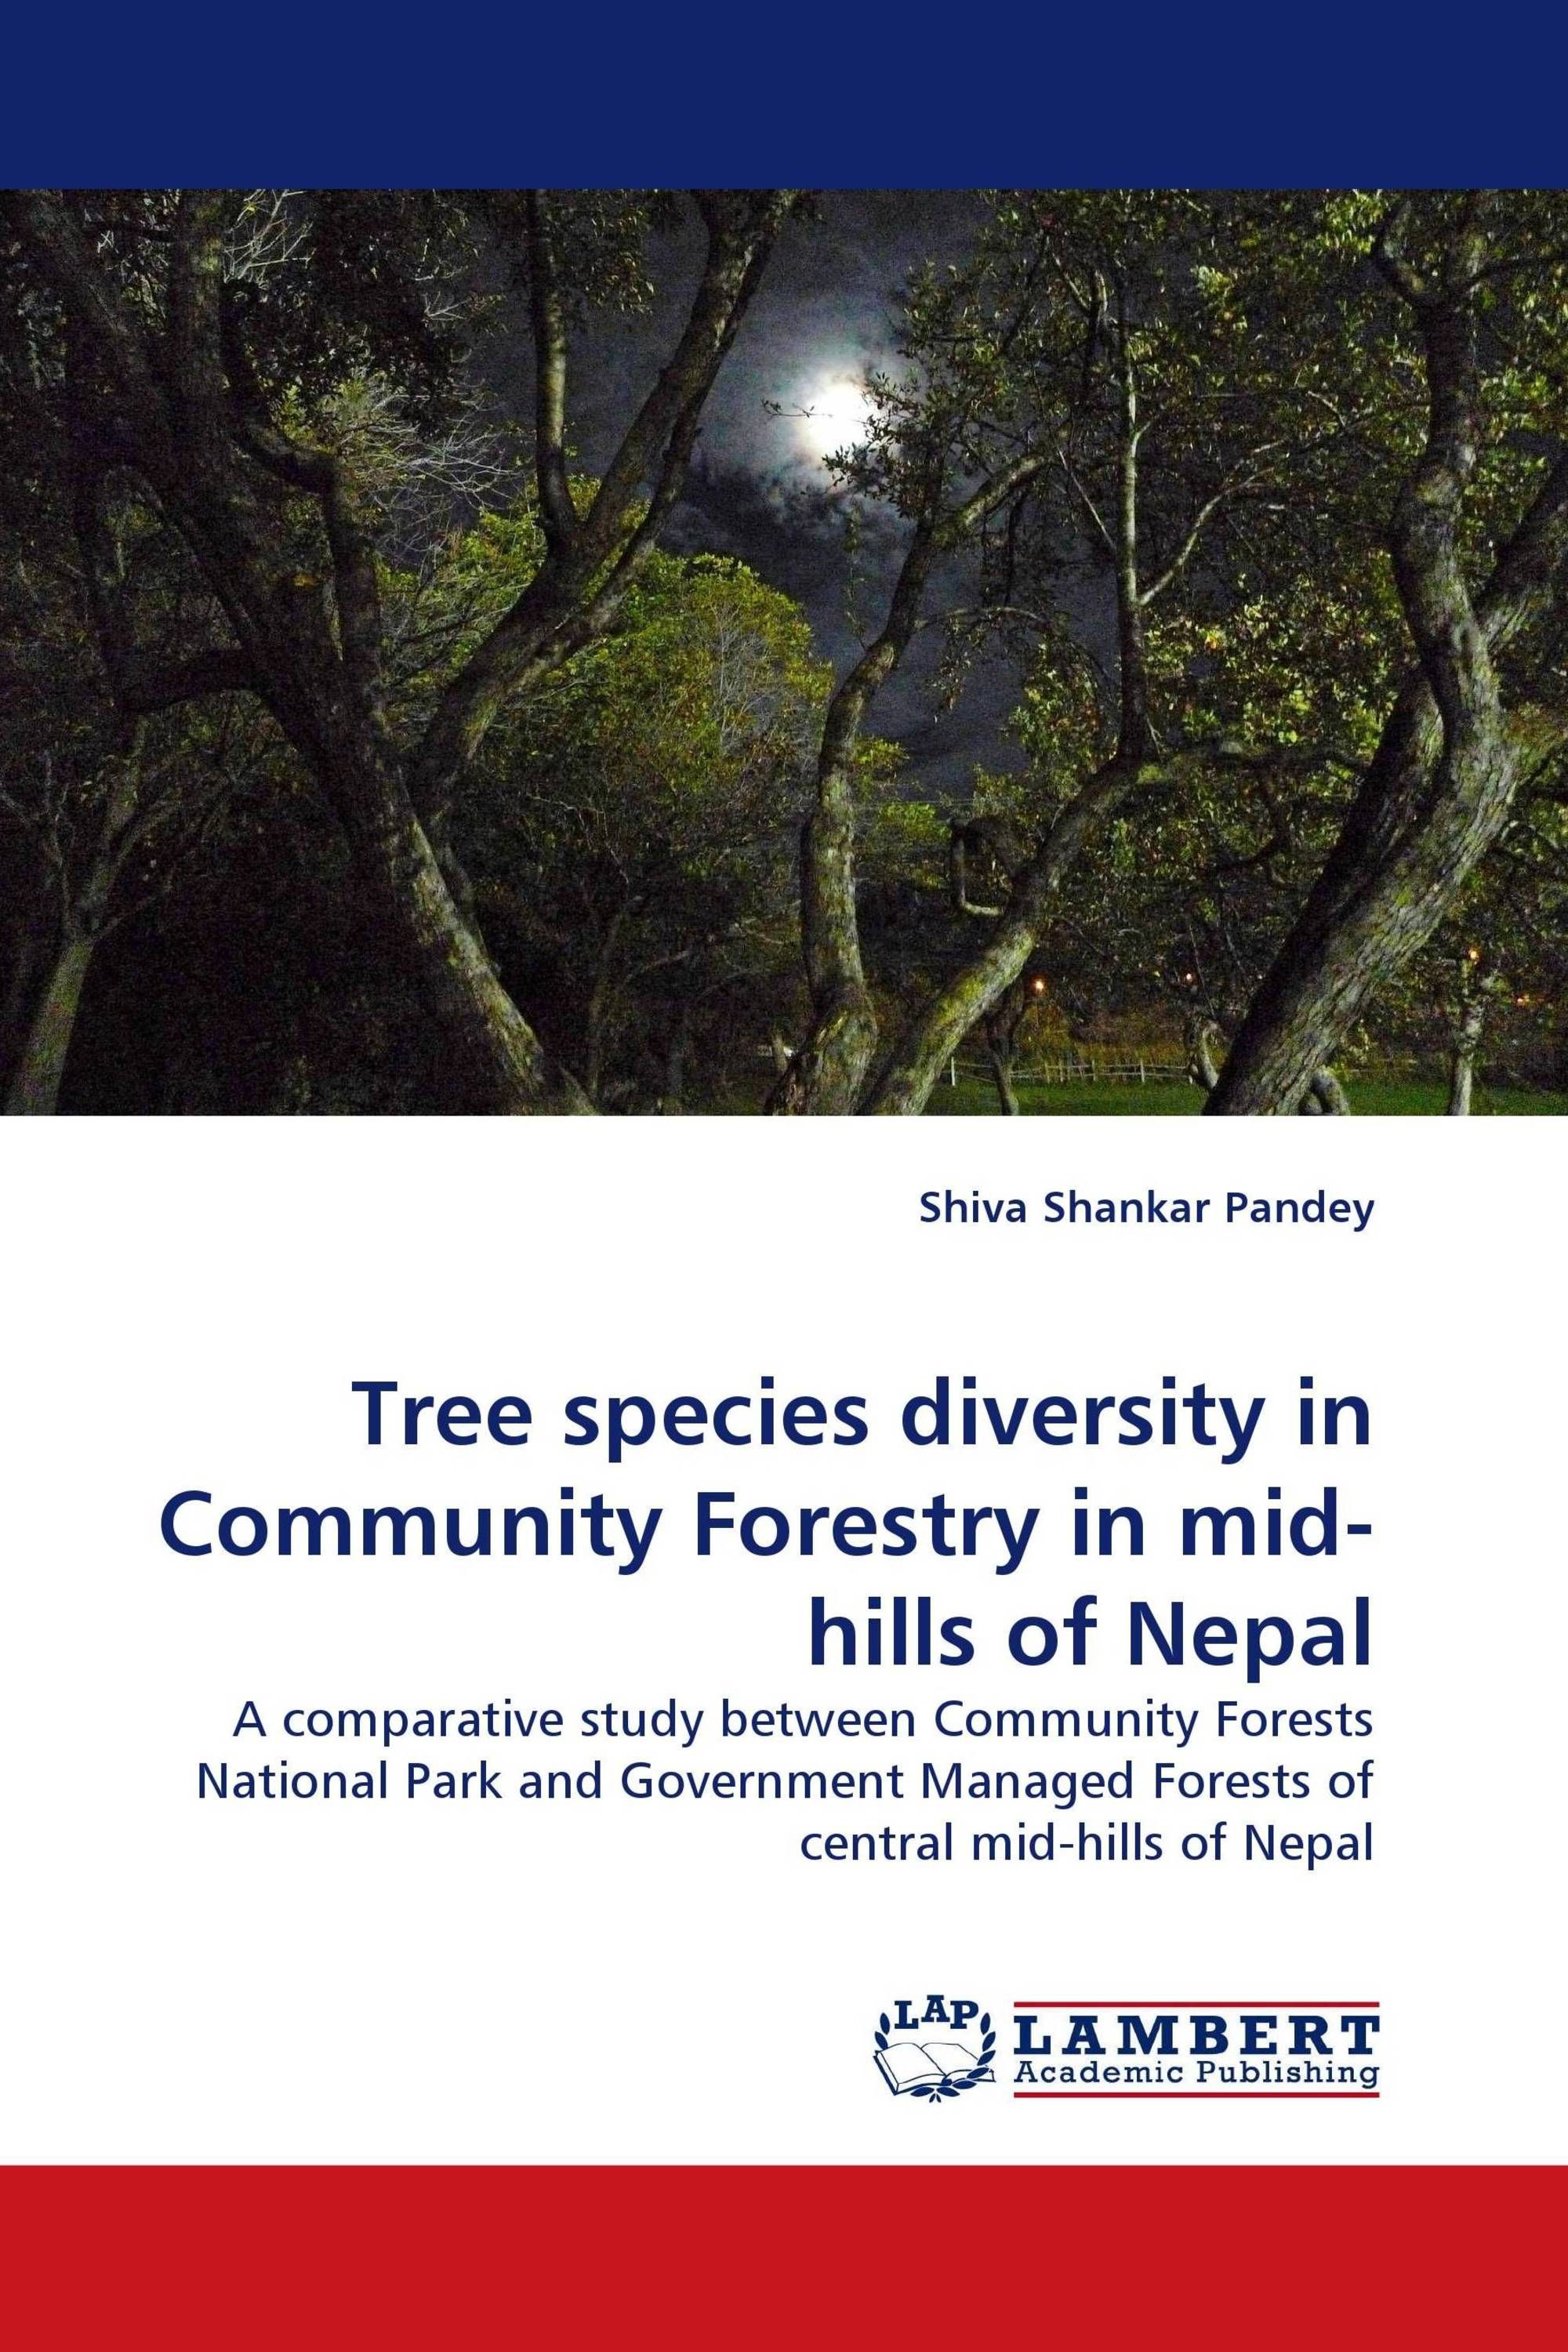 thesis on community forestry in nepal